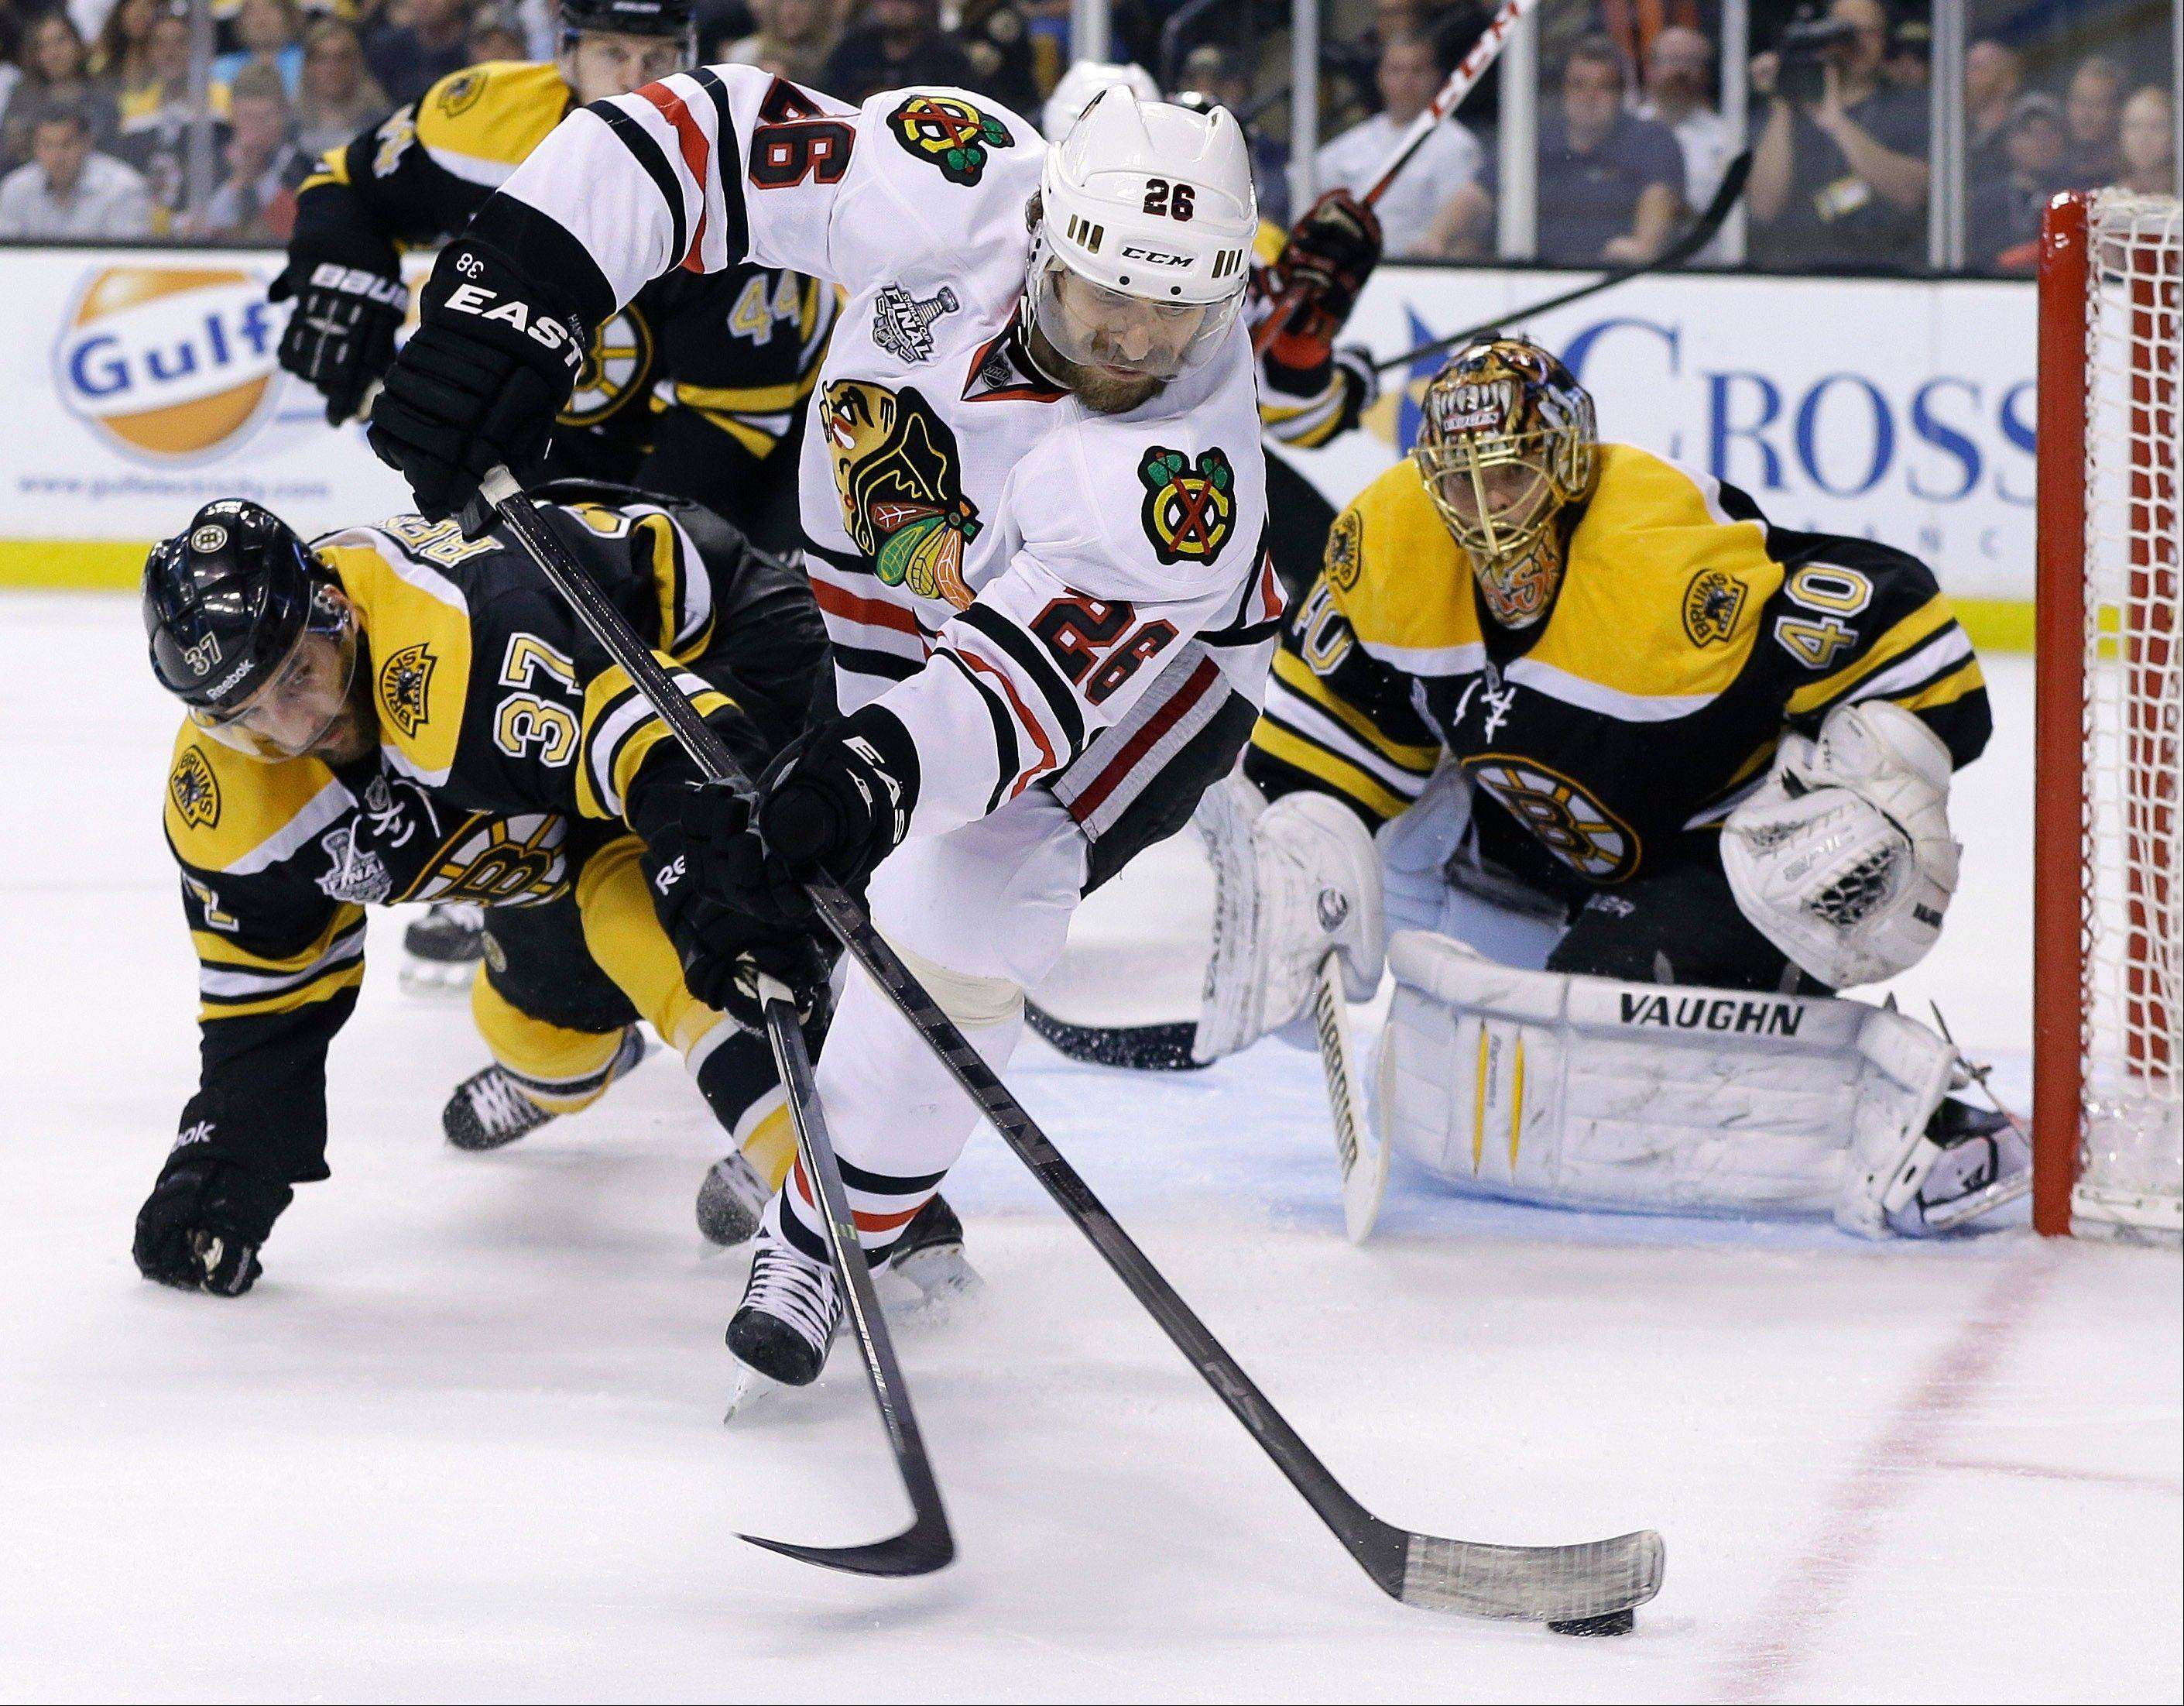 Boston Bruins center Patrice Bergeron (37) and Chicago Blackhawks center Michal Handzus (26), of Slovakia, fight for the puck in front of Boston Bruins goalie Tuukka Rask (40), of Finland, during the first period in Game 6 of the NHL Stanley Cup Finals Monday.